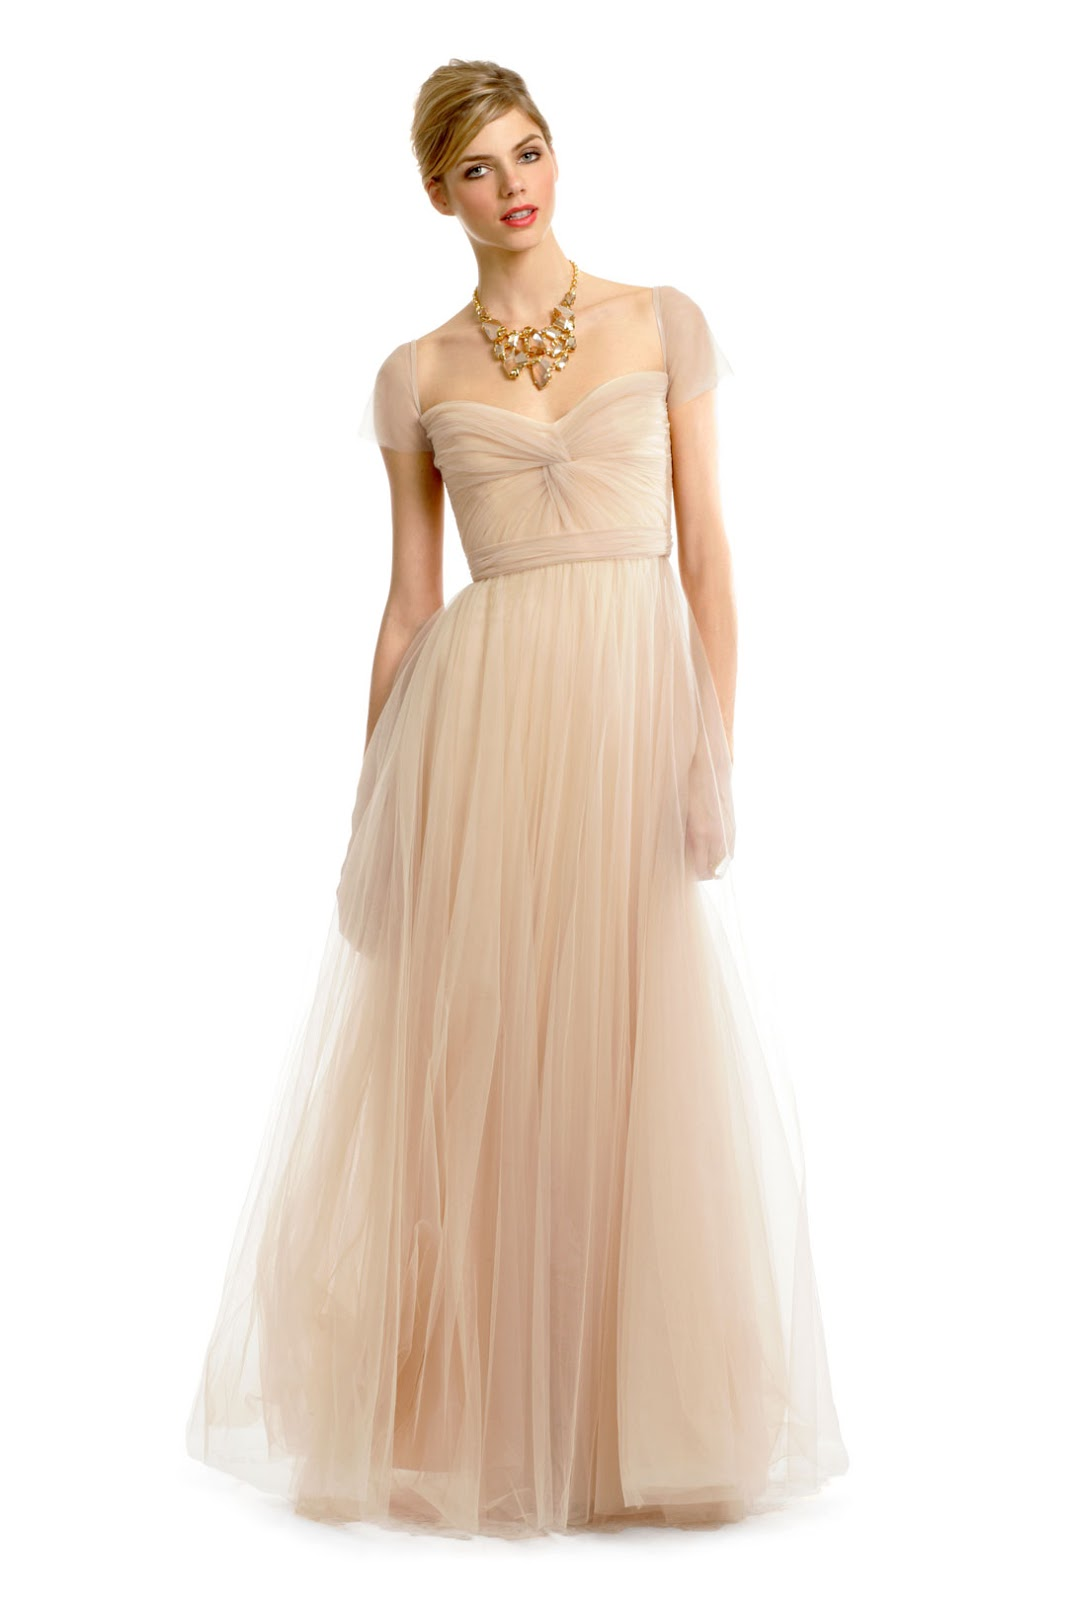 Friday five for five wedding dresses under 500 dollars for Wedding dresses for 500 or less